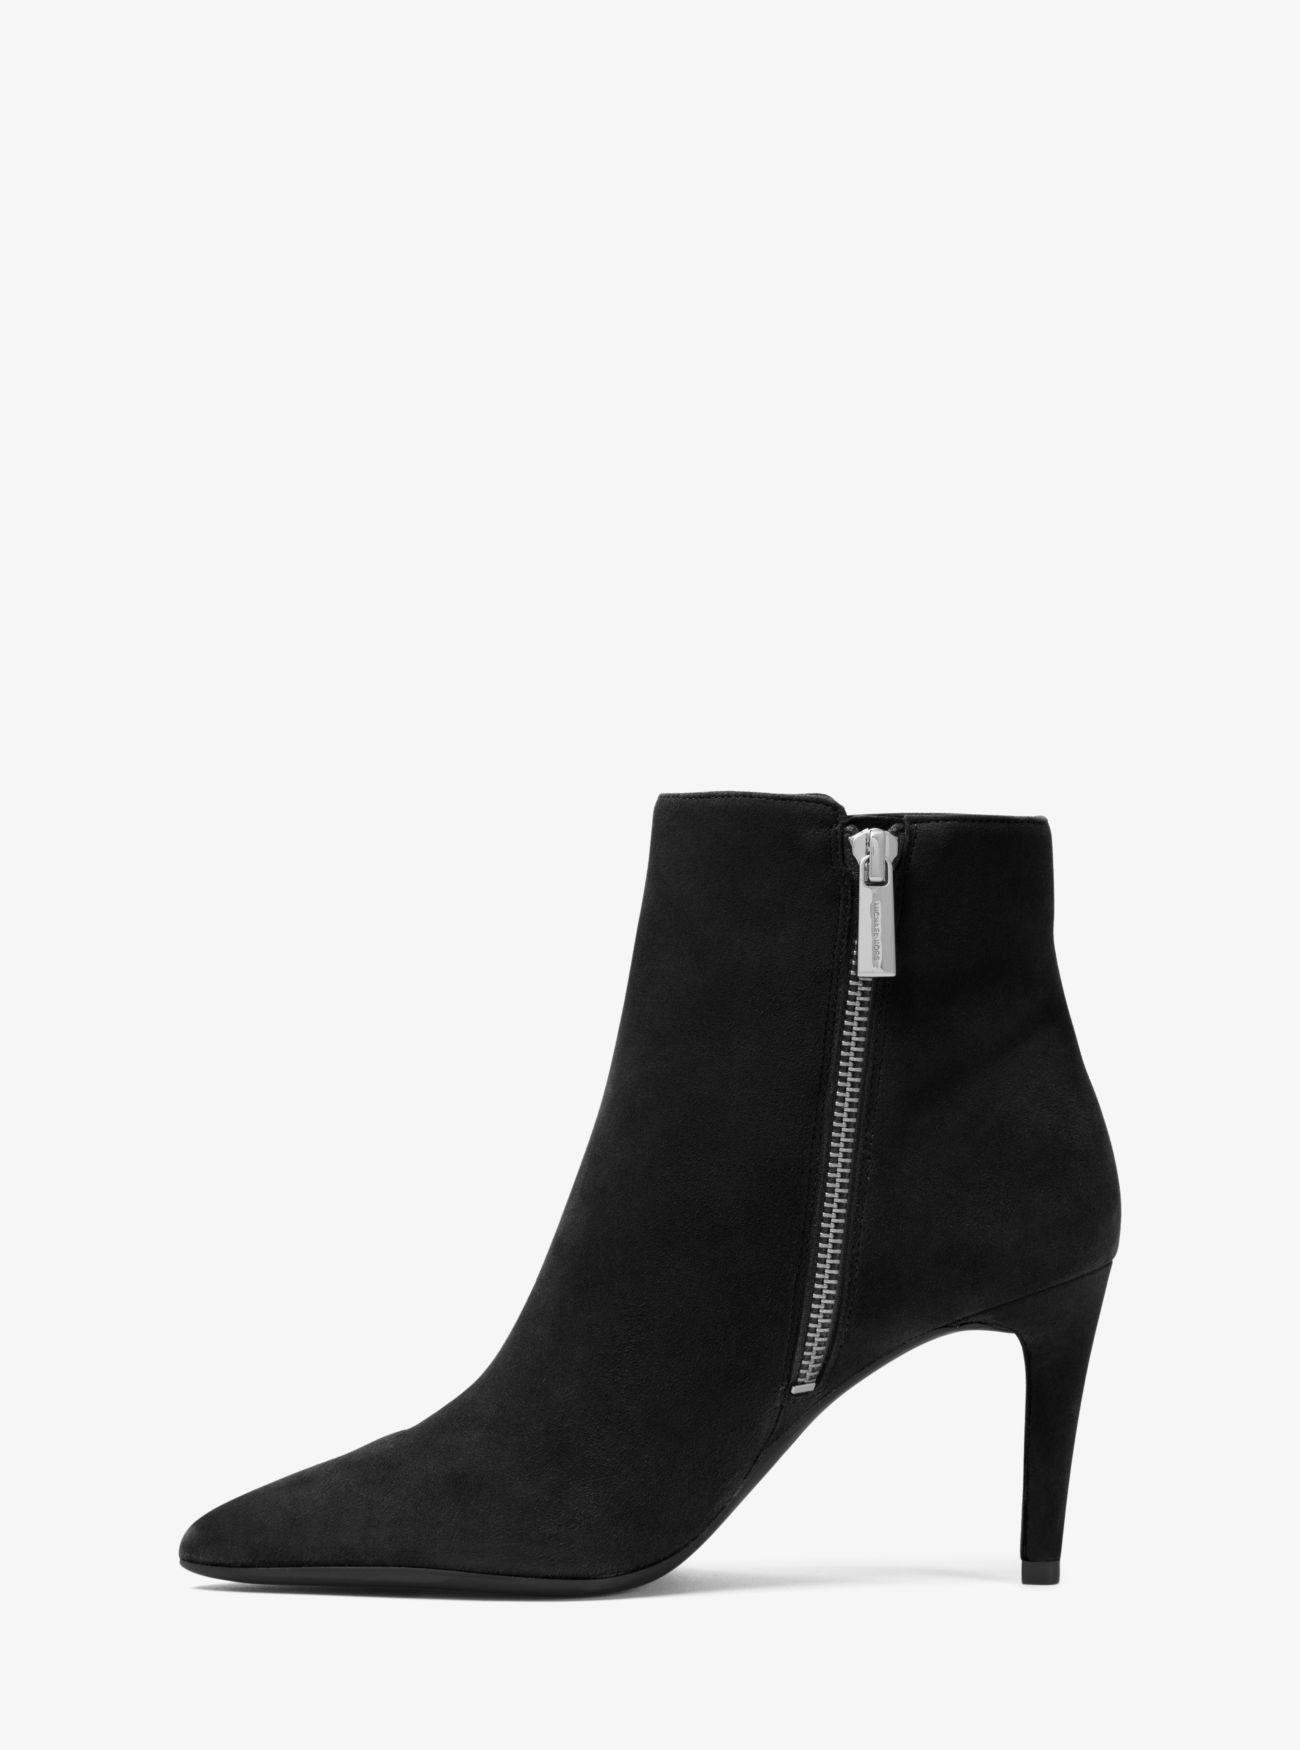 Michael Kors Dorothy Suede Ankle Boot in Black